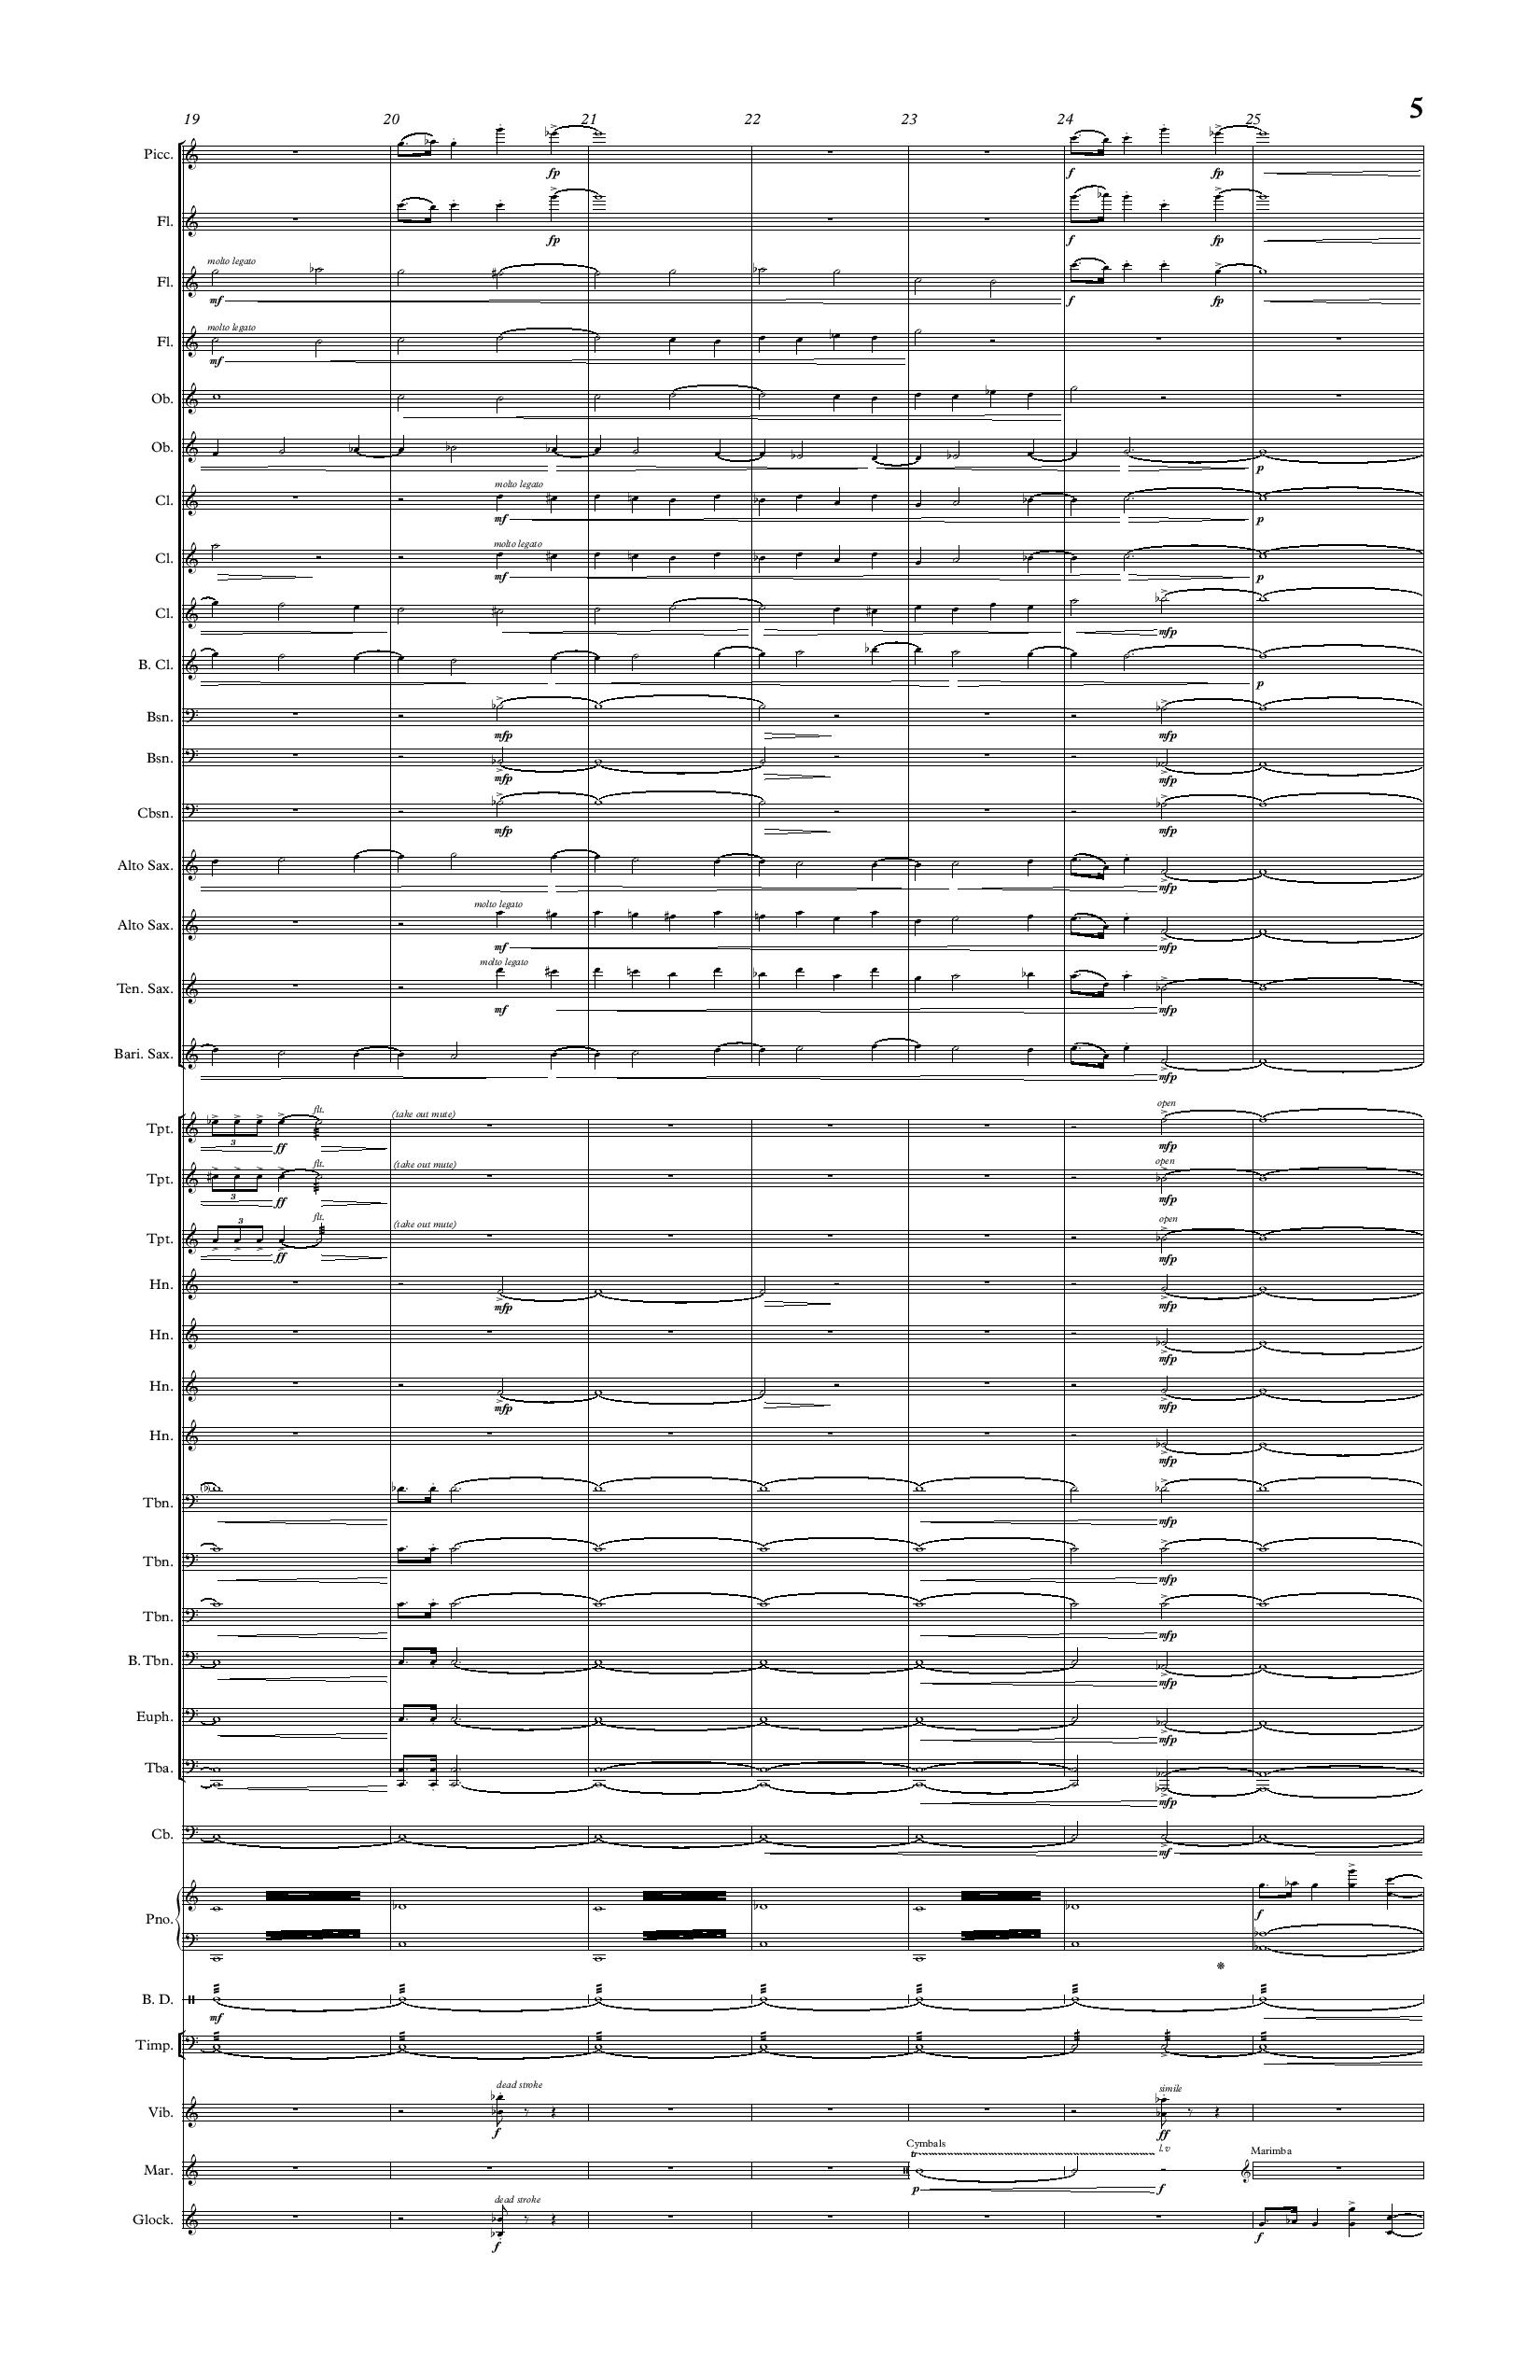 Rupture Full Transposed Score - Full Score (1)-page-005